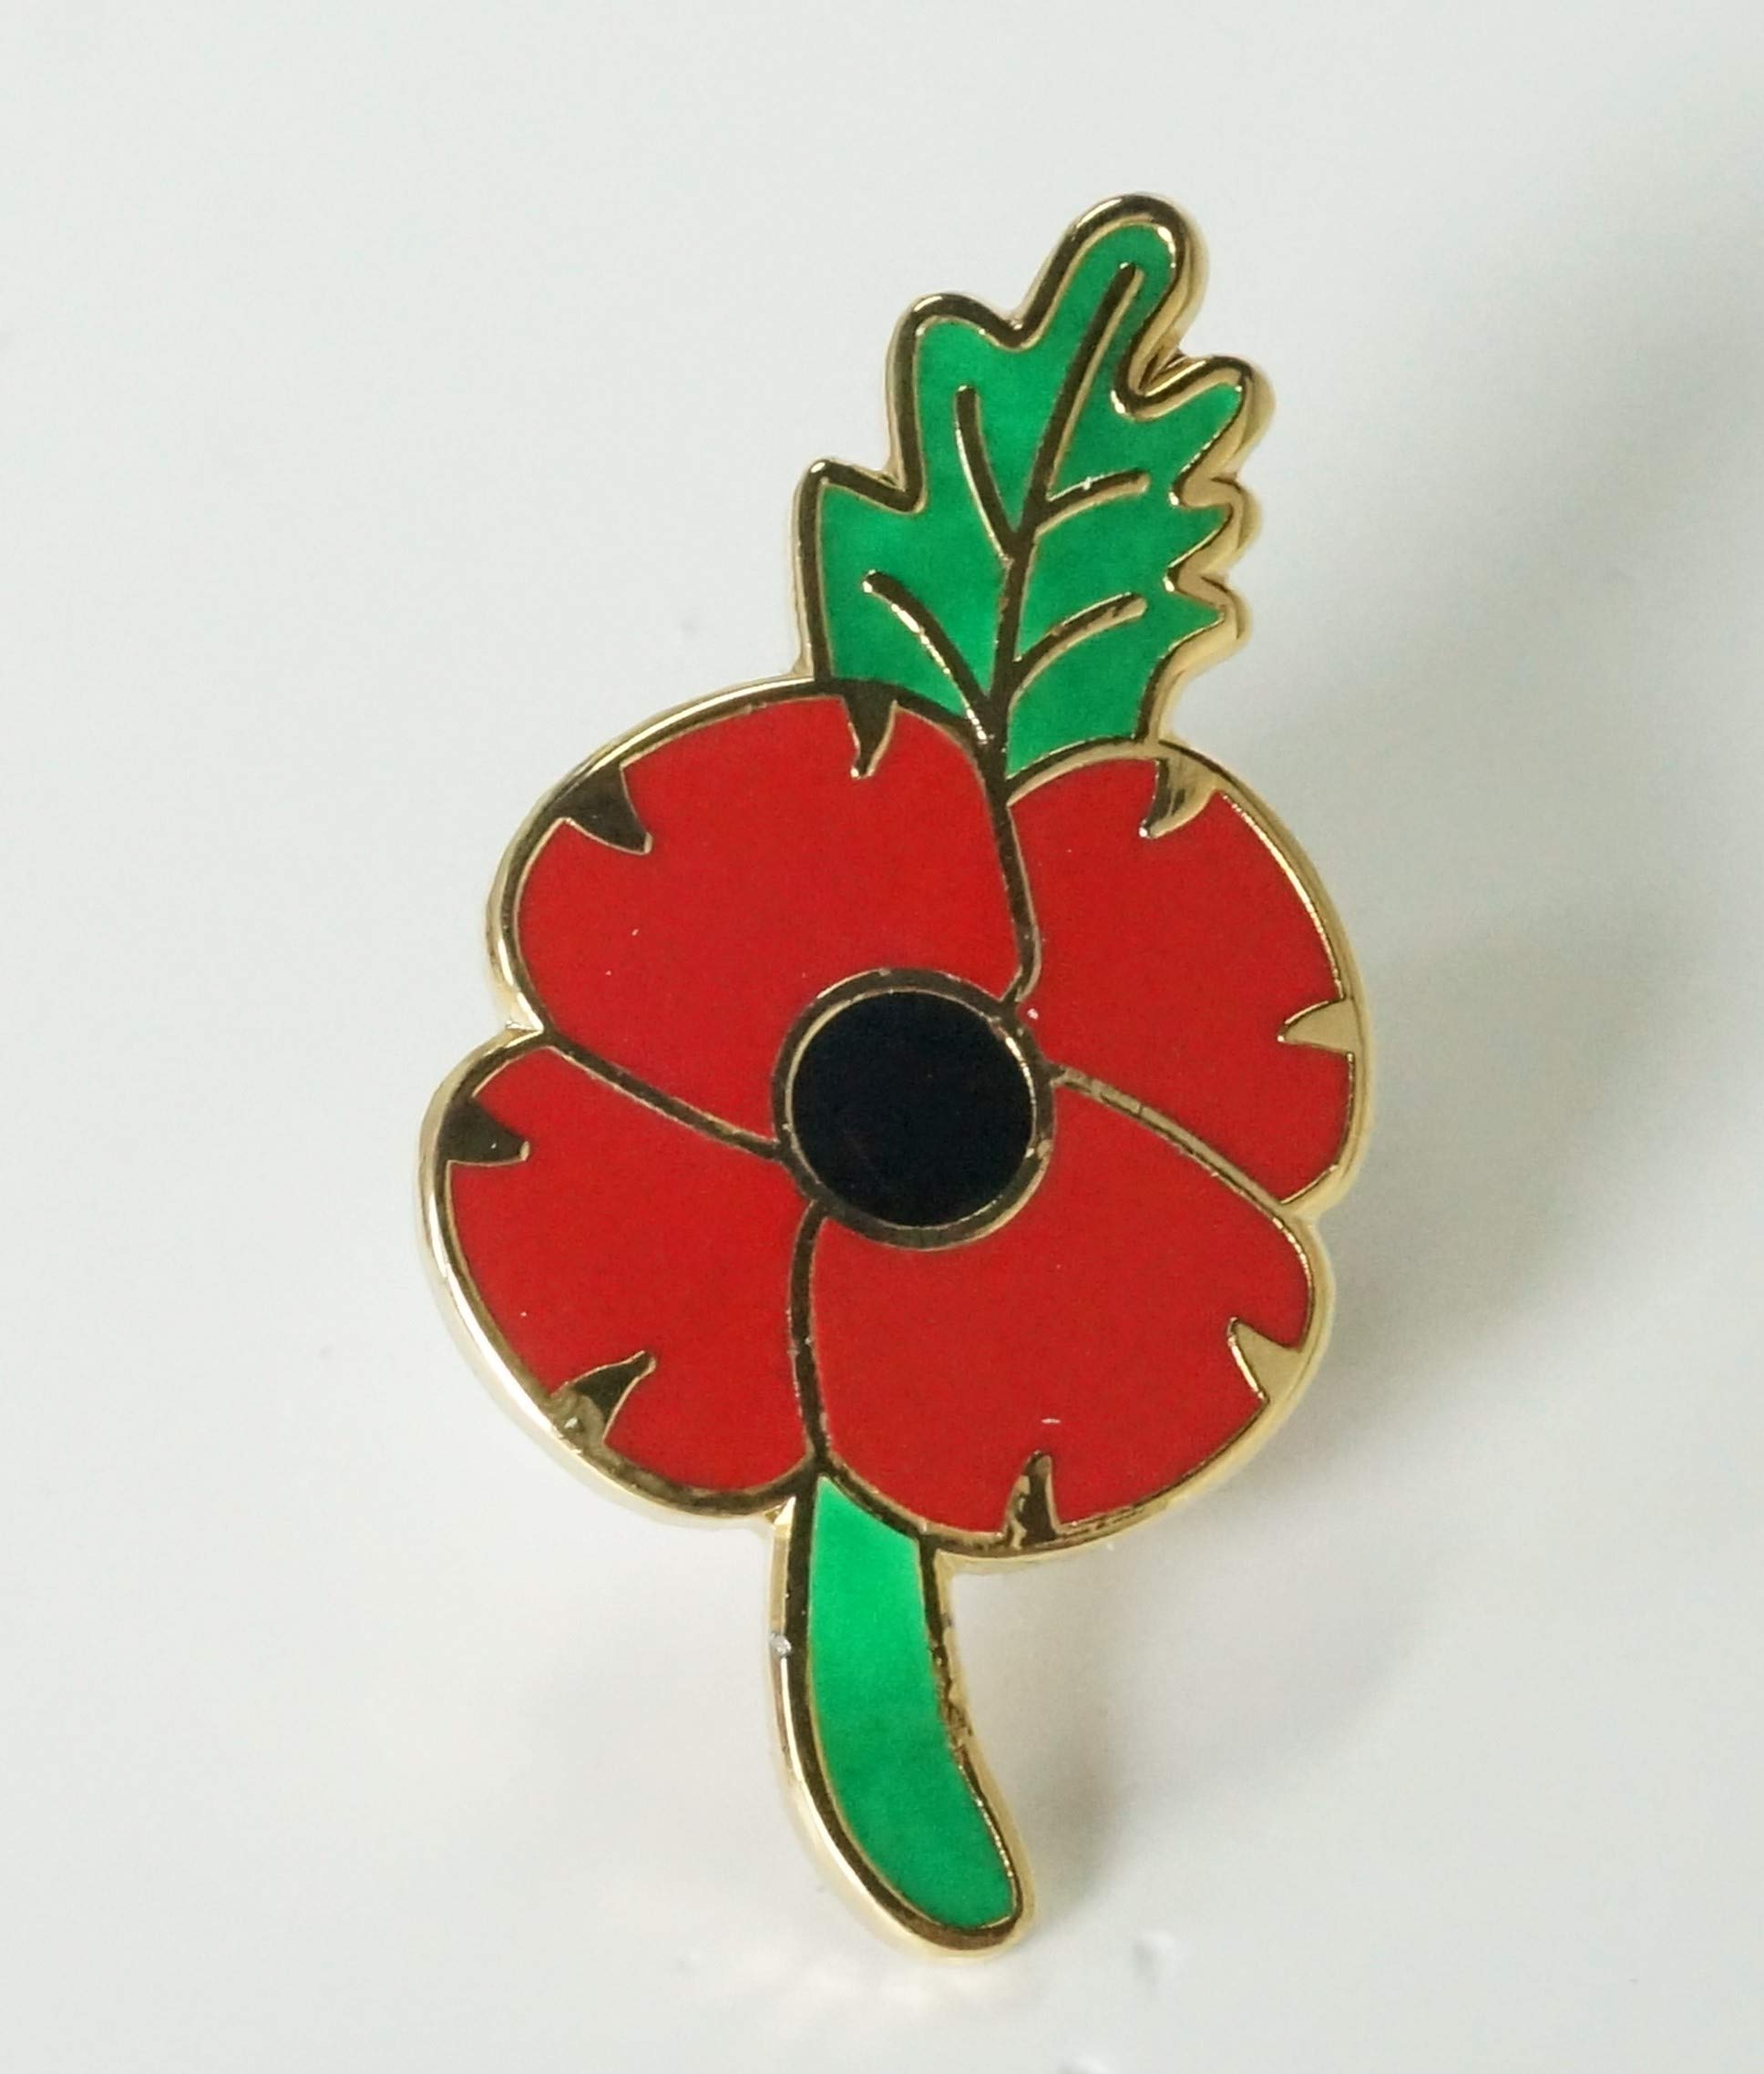 Purple Poppy Pin Badge Remembering The Animals of War Day Brooch 2019 Gift